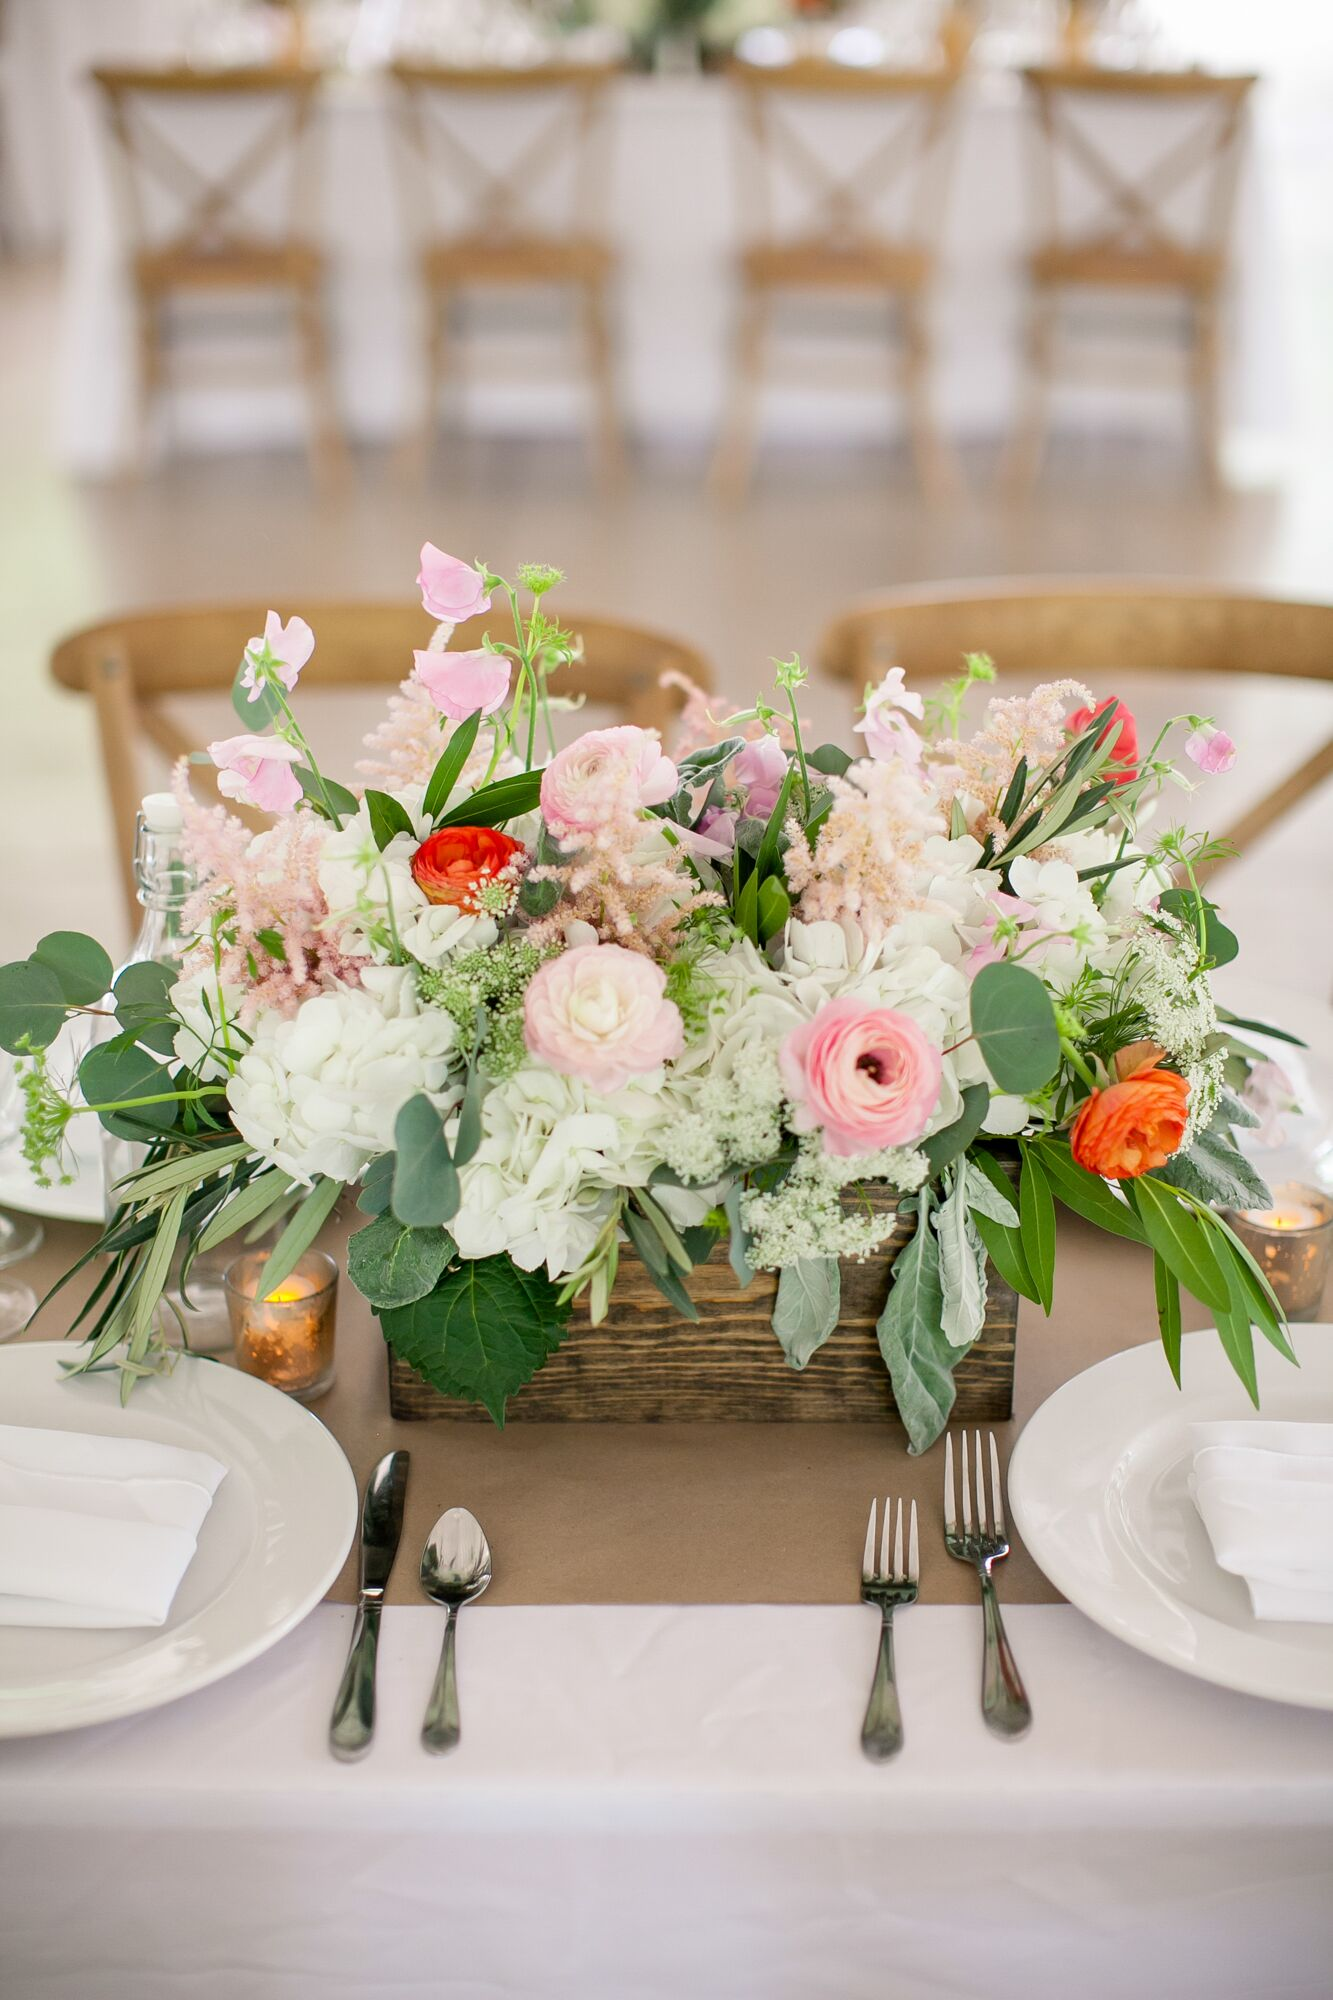 Romantic Blush and Coral Ranunculus Centerpiece in Wooden Box